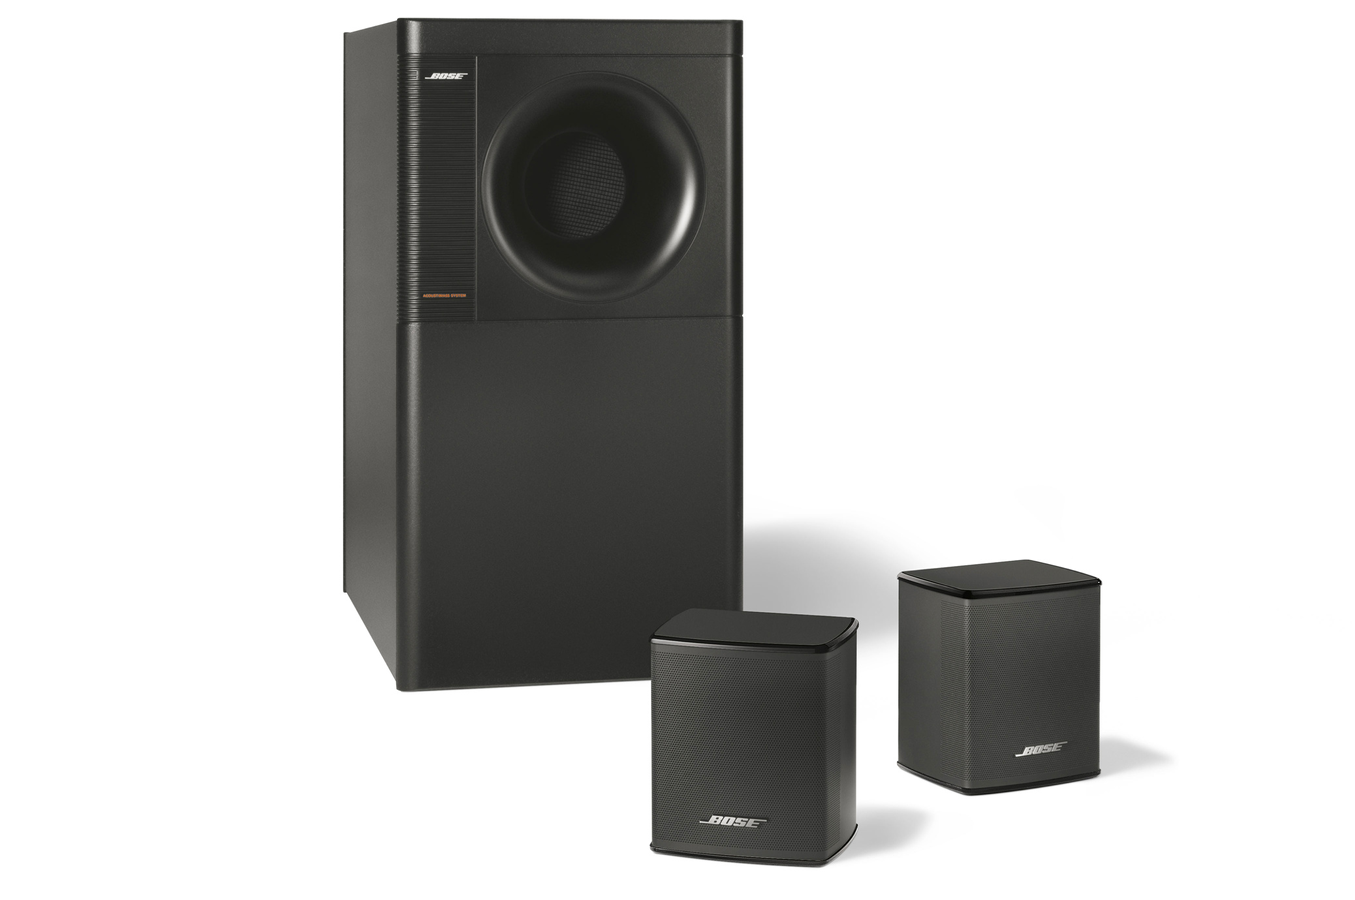 enceinte compacte bose acoustimass 3 serie 5 black. Black Bedroom Furniture Sets. Home Design Ideas